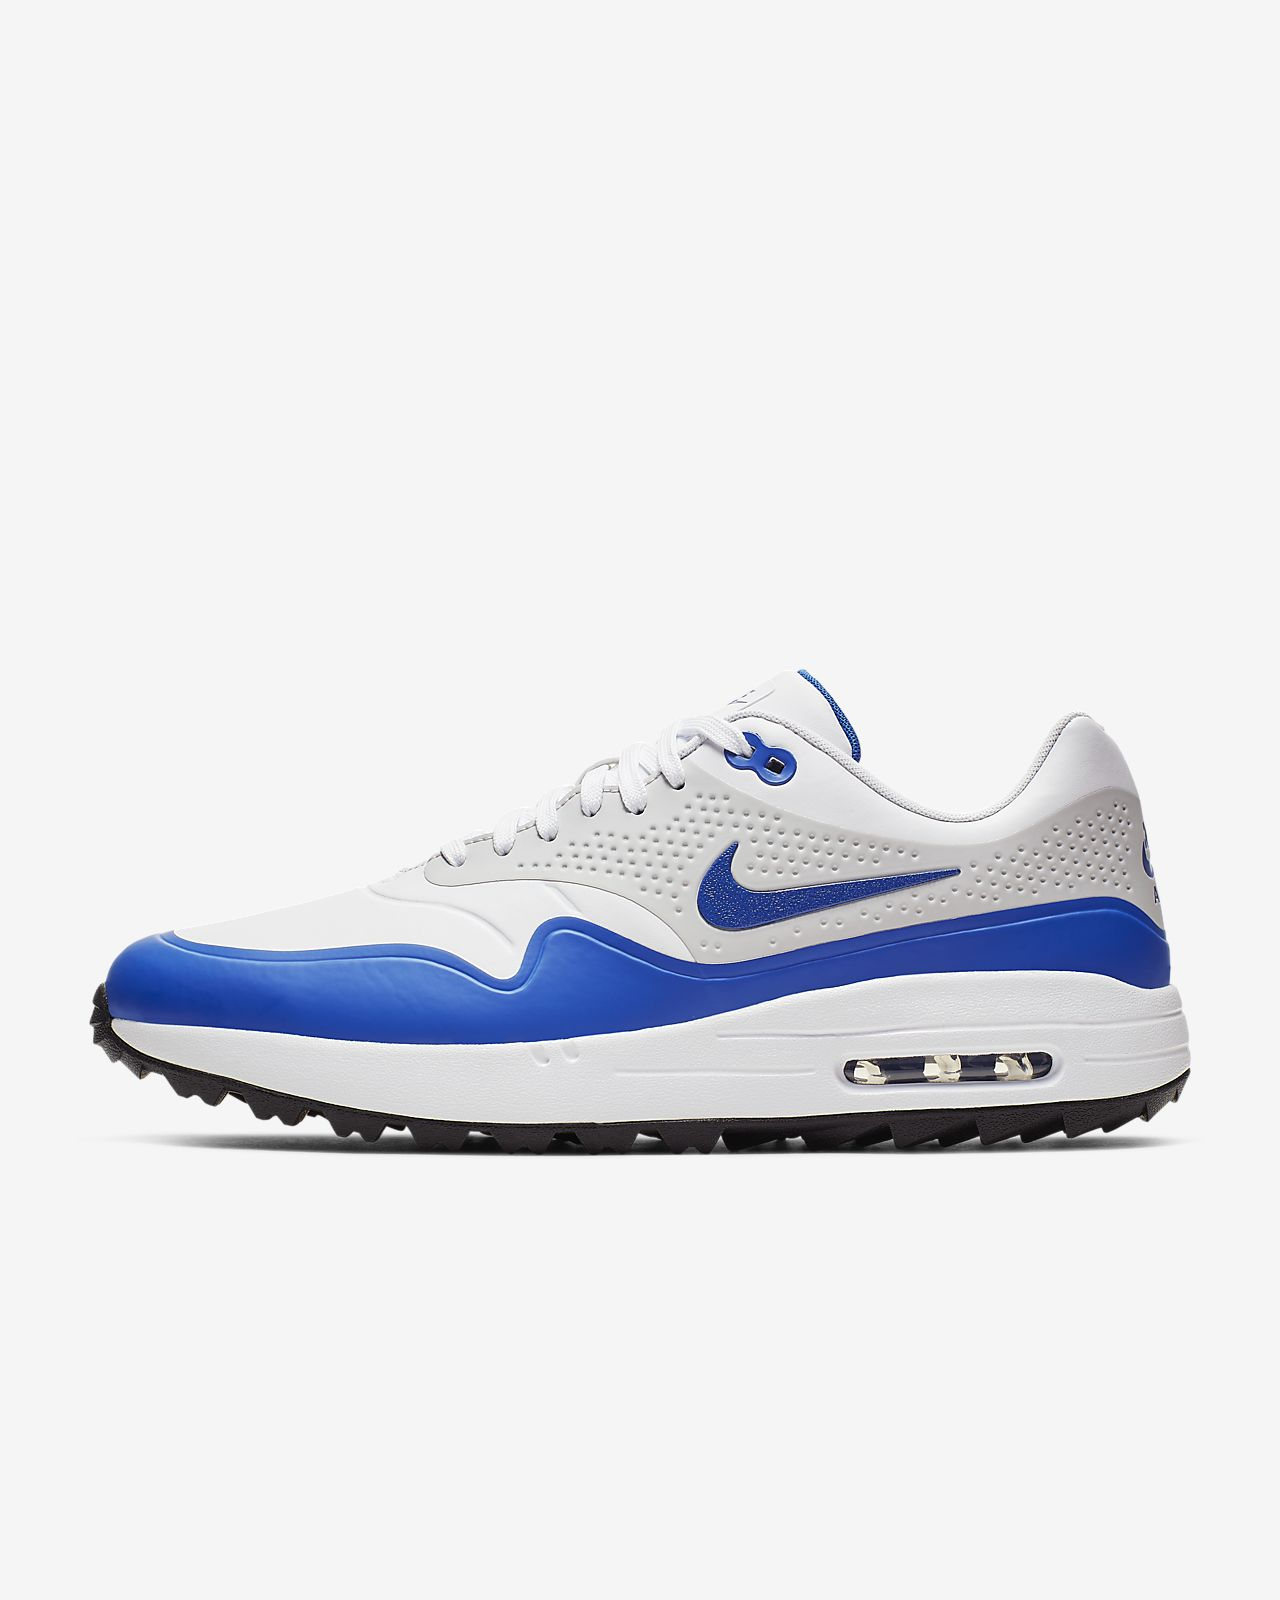 cheaper 66fcb 0ebfd Men s Golf Shoe. Nike Air Max 1 G